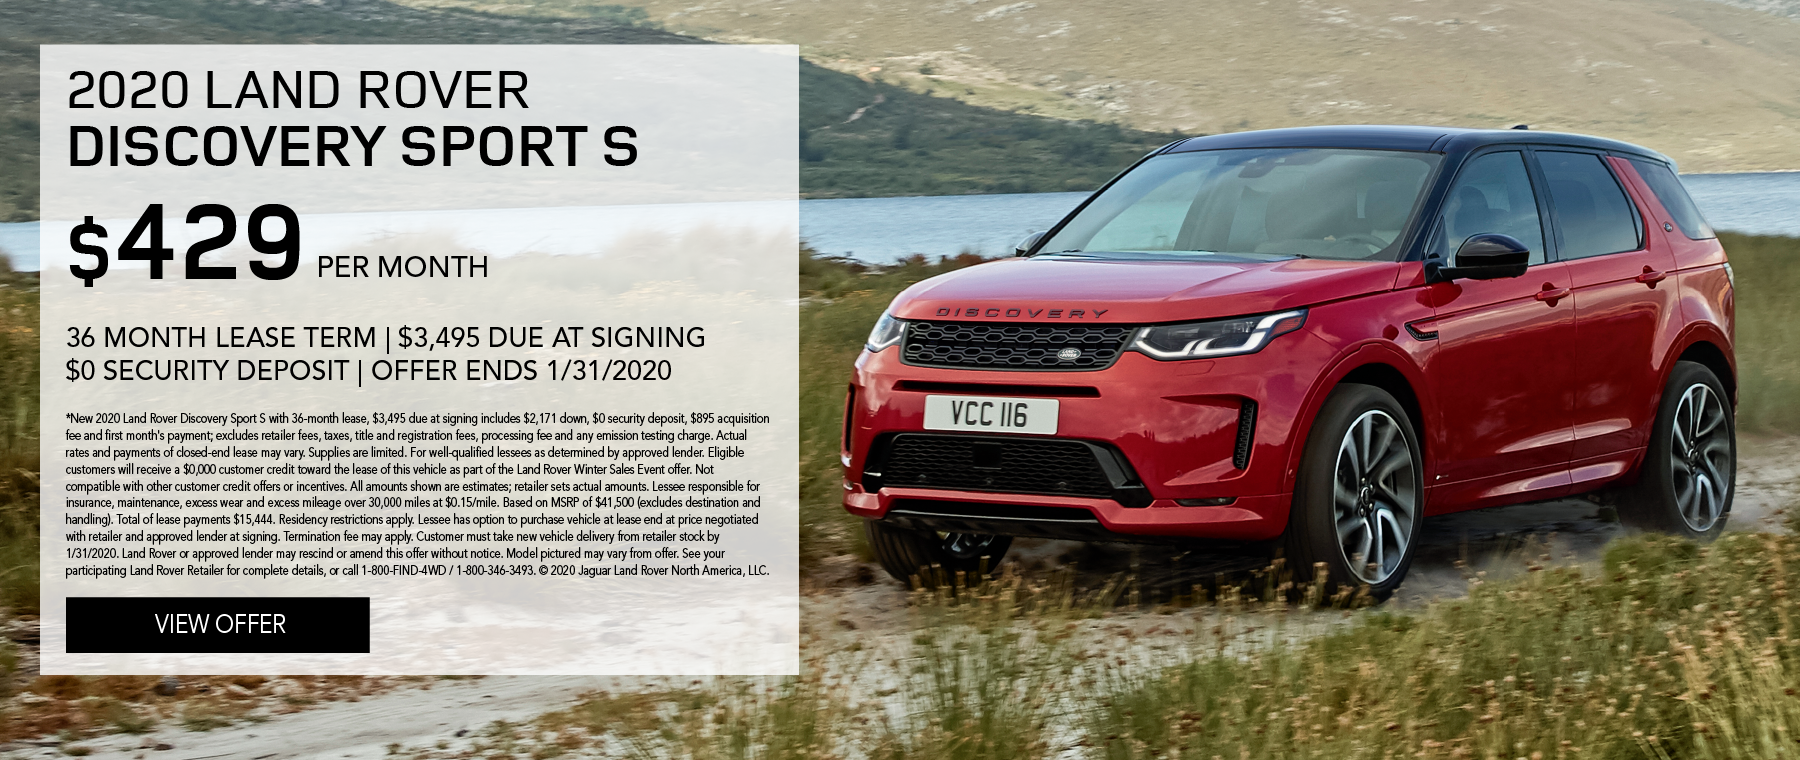 2020 Land Rover Discovery Sport S  | $429/month | 36-month lease | 10,000 miles/year | $3,495 due at signing | $0 security deposit | expires 1/31/2020